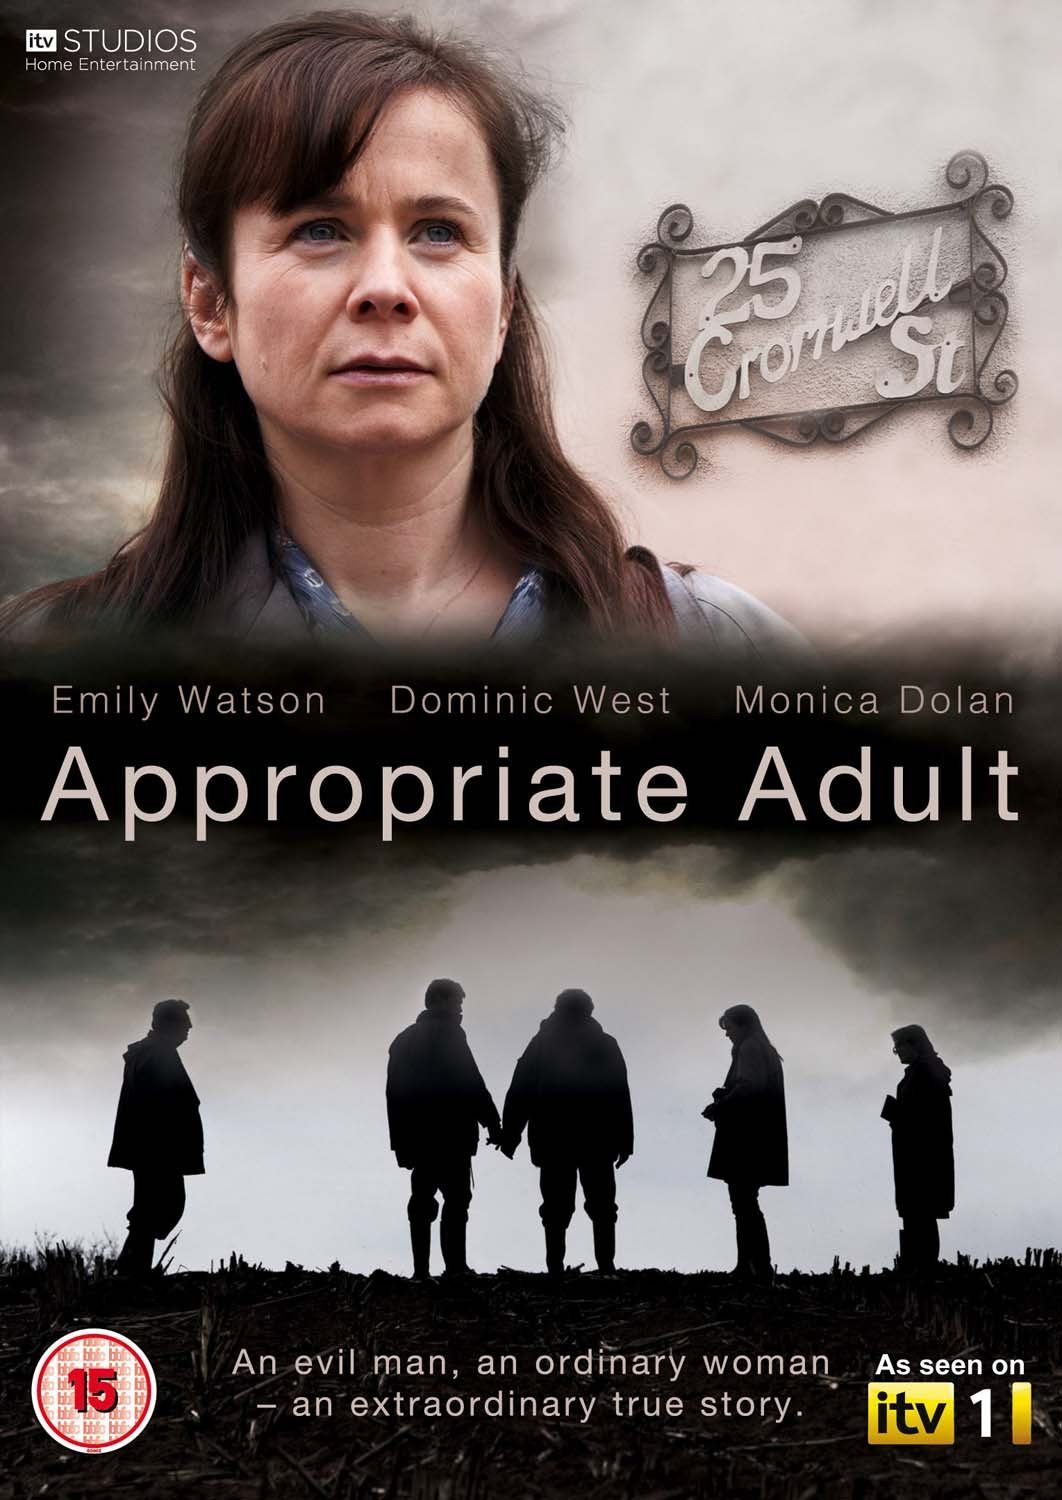 Appropriate Adult [DVD] [2011]: Amazon.co.uk: Dominic West, Emily Watson,  Monica Dolan, Robert Glenister, Sylvestra Le Touzel: DVD & Blu-ray